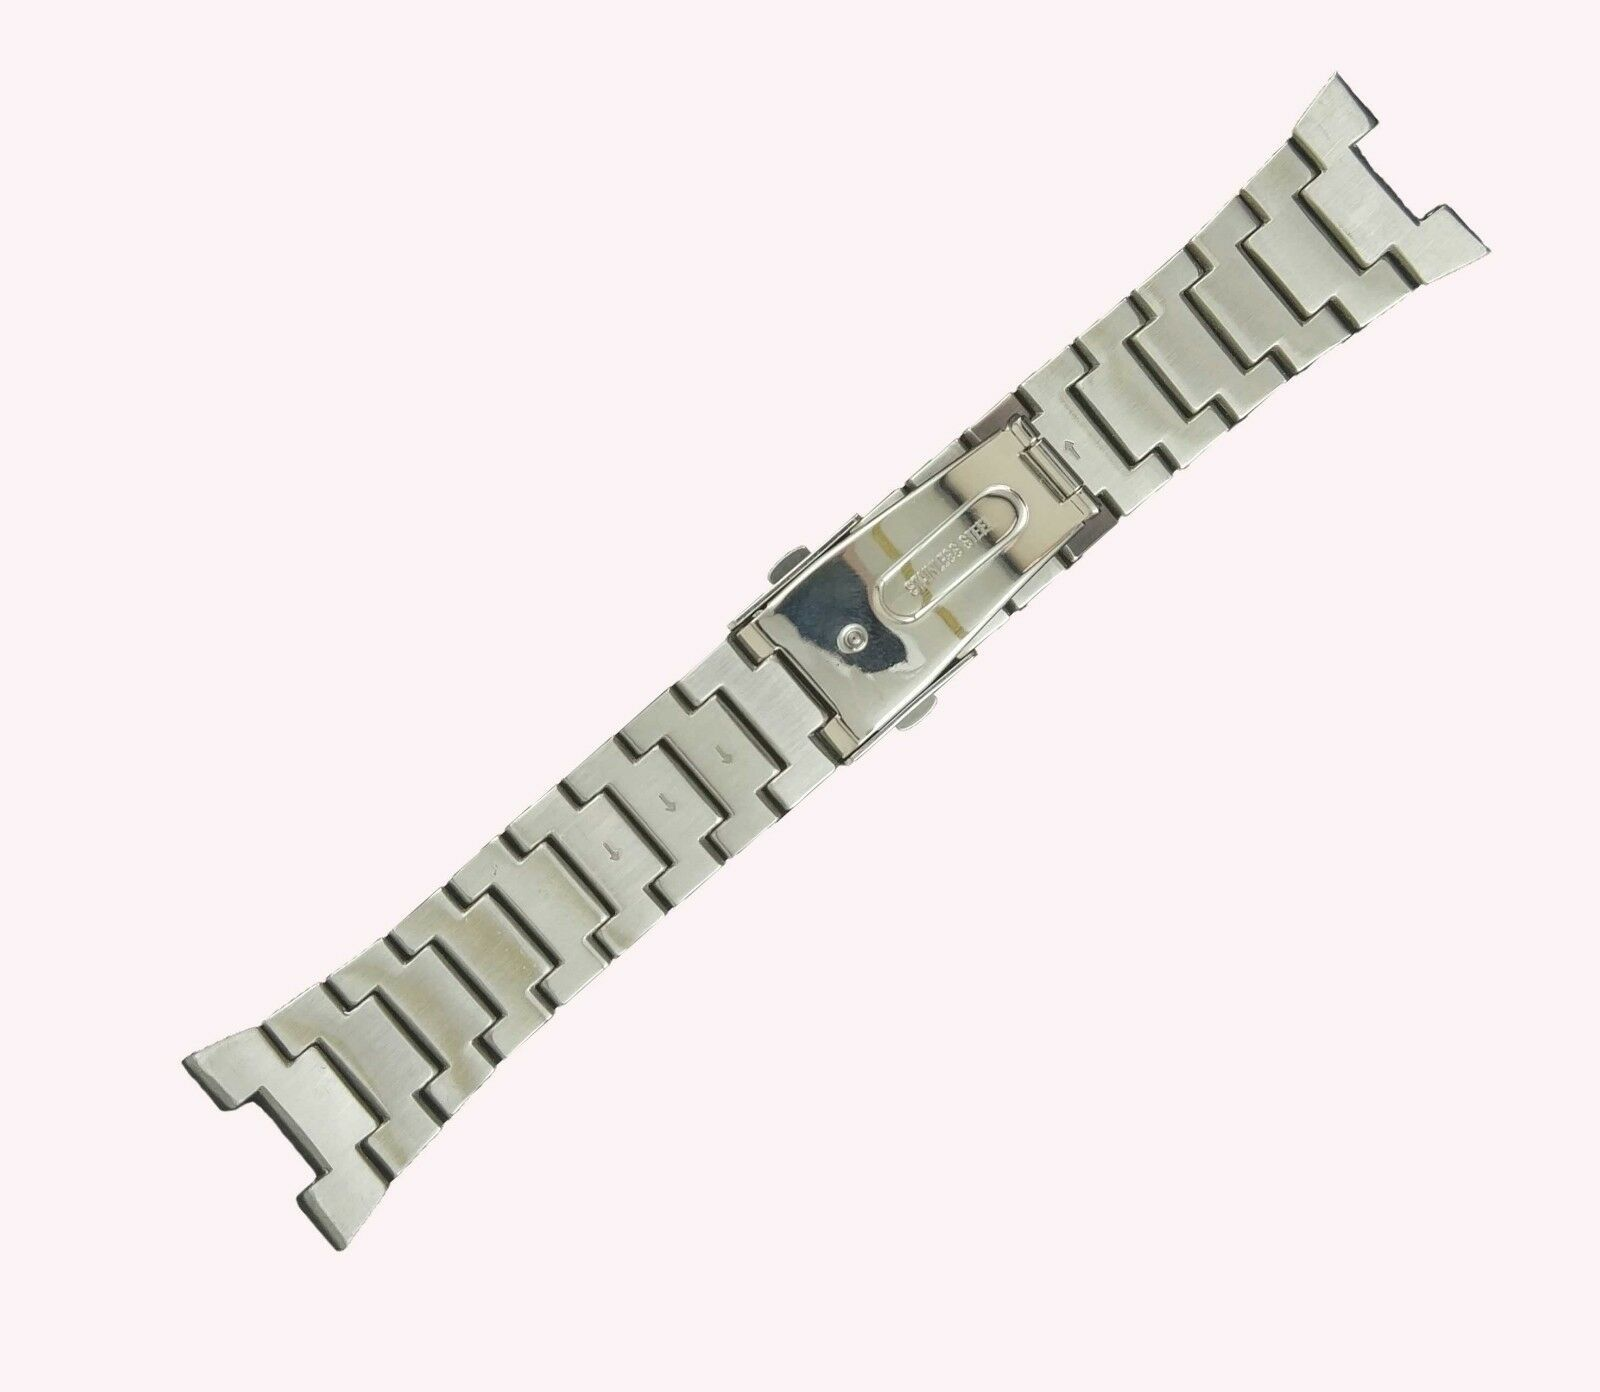 12x28mm Steel Watch Bracelet For Seiko SNAD37 4A1J1JRR 524SKO